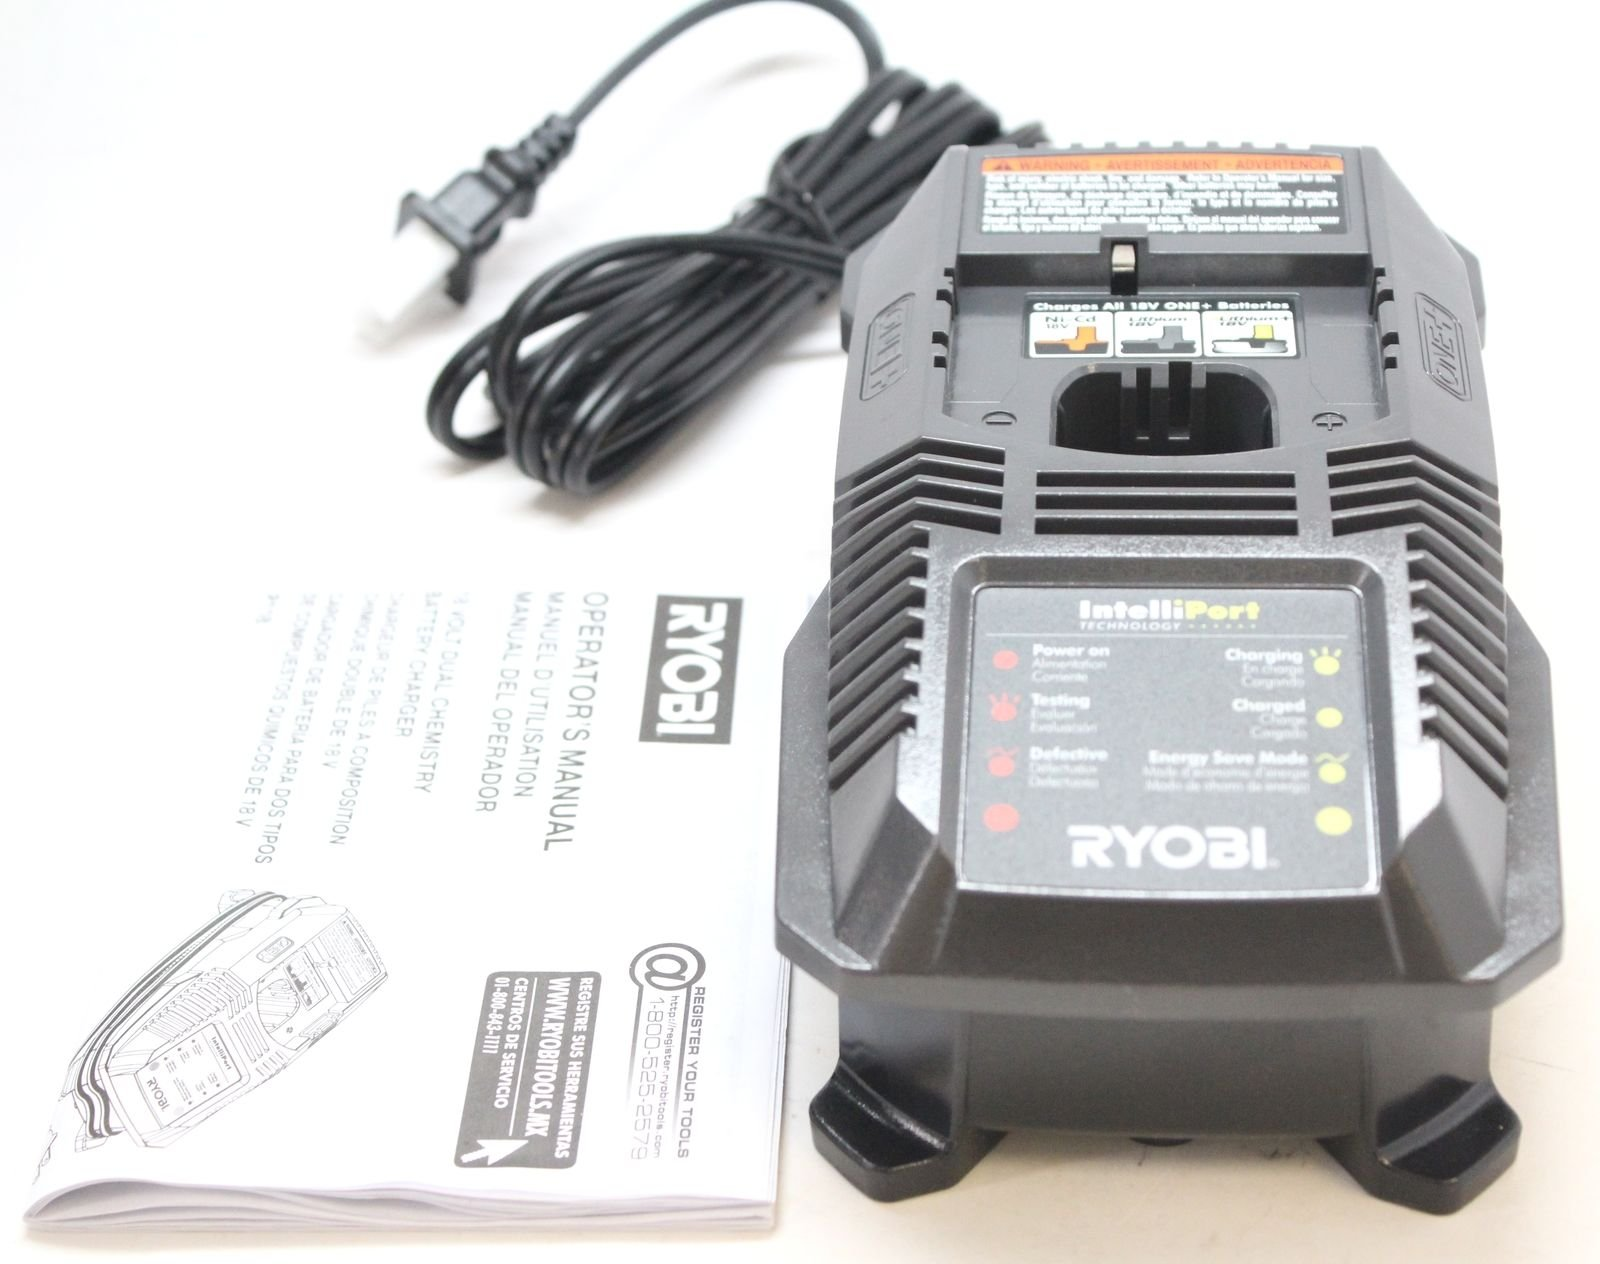 Ryobi P117 One+ 18 Volt Dual Chemistry IntelliPort Lithium Ion and NiCad Battery Charger (Battery Not Included, Charger Only) by Ryobi